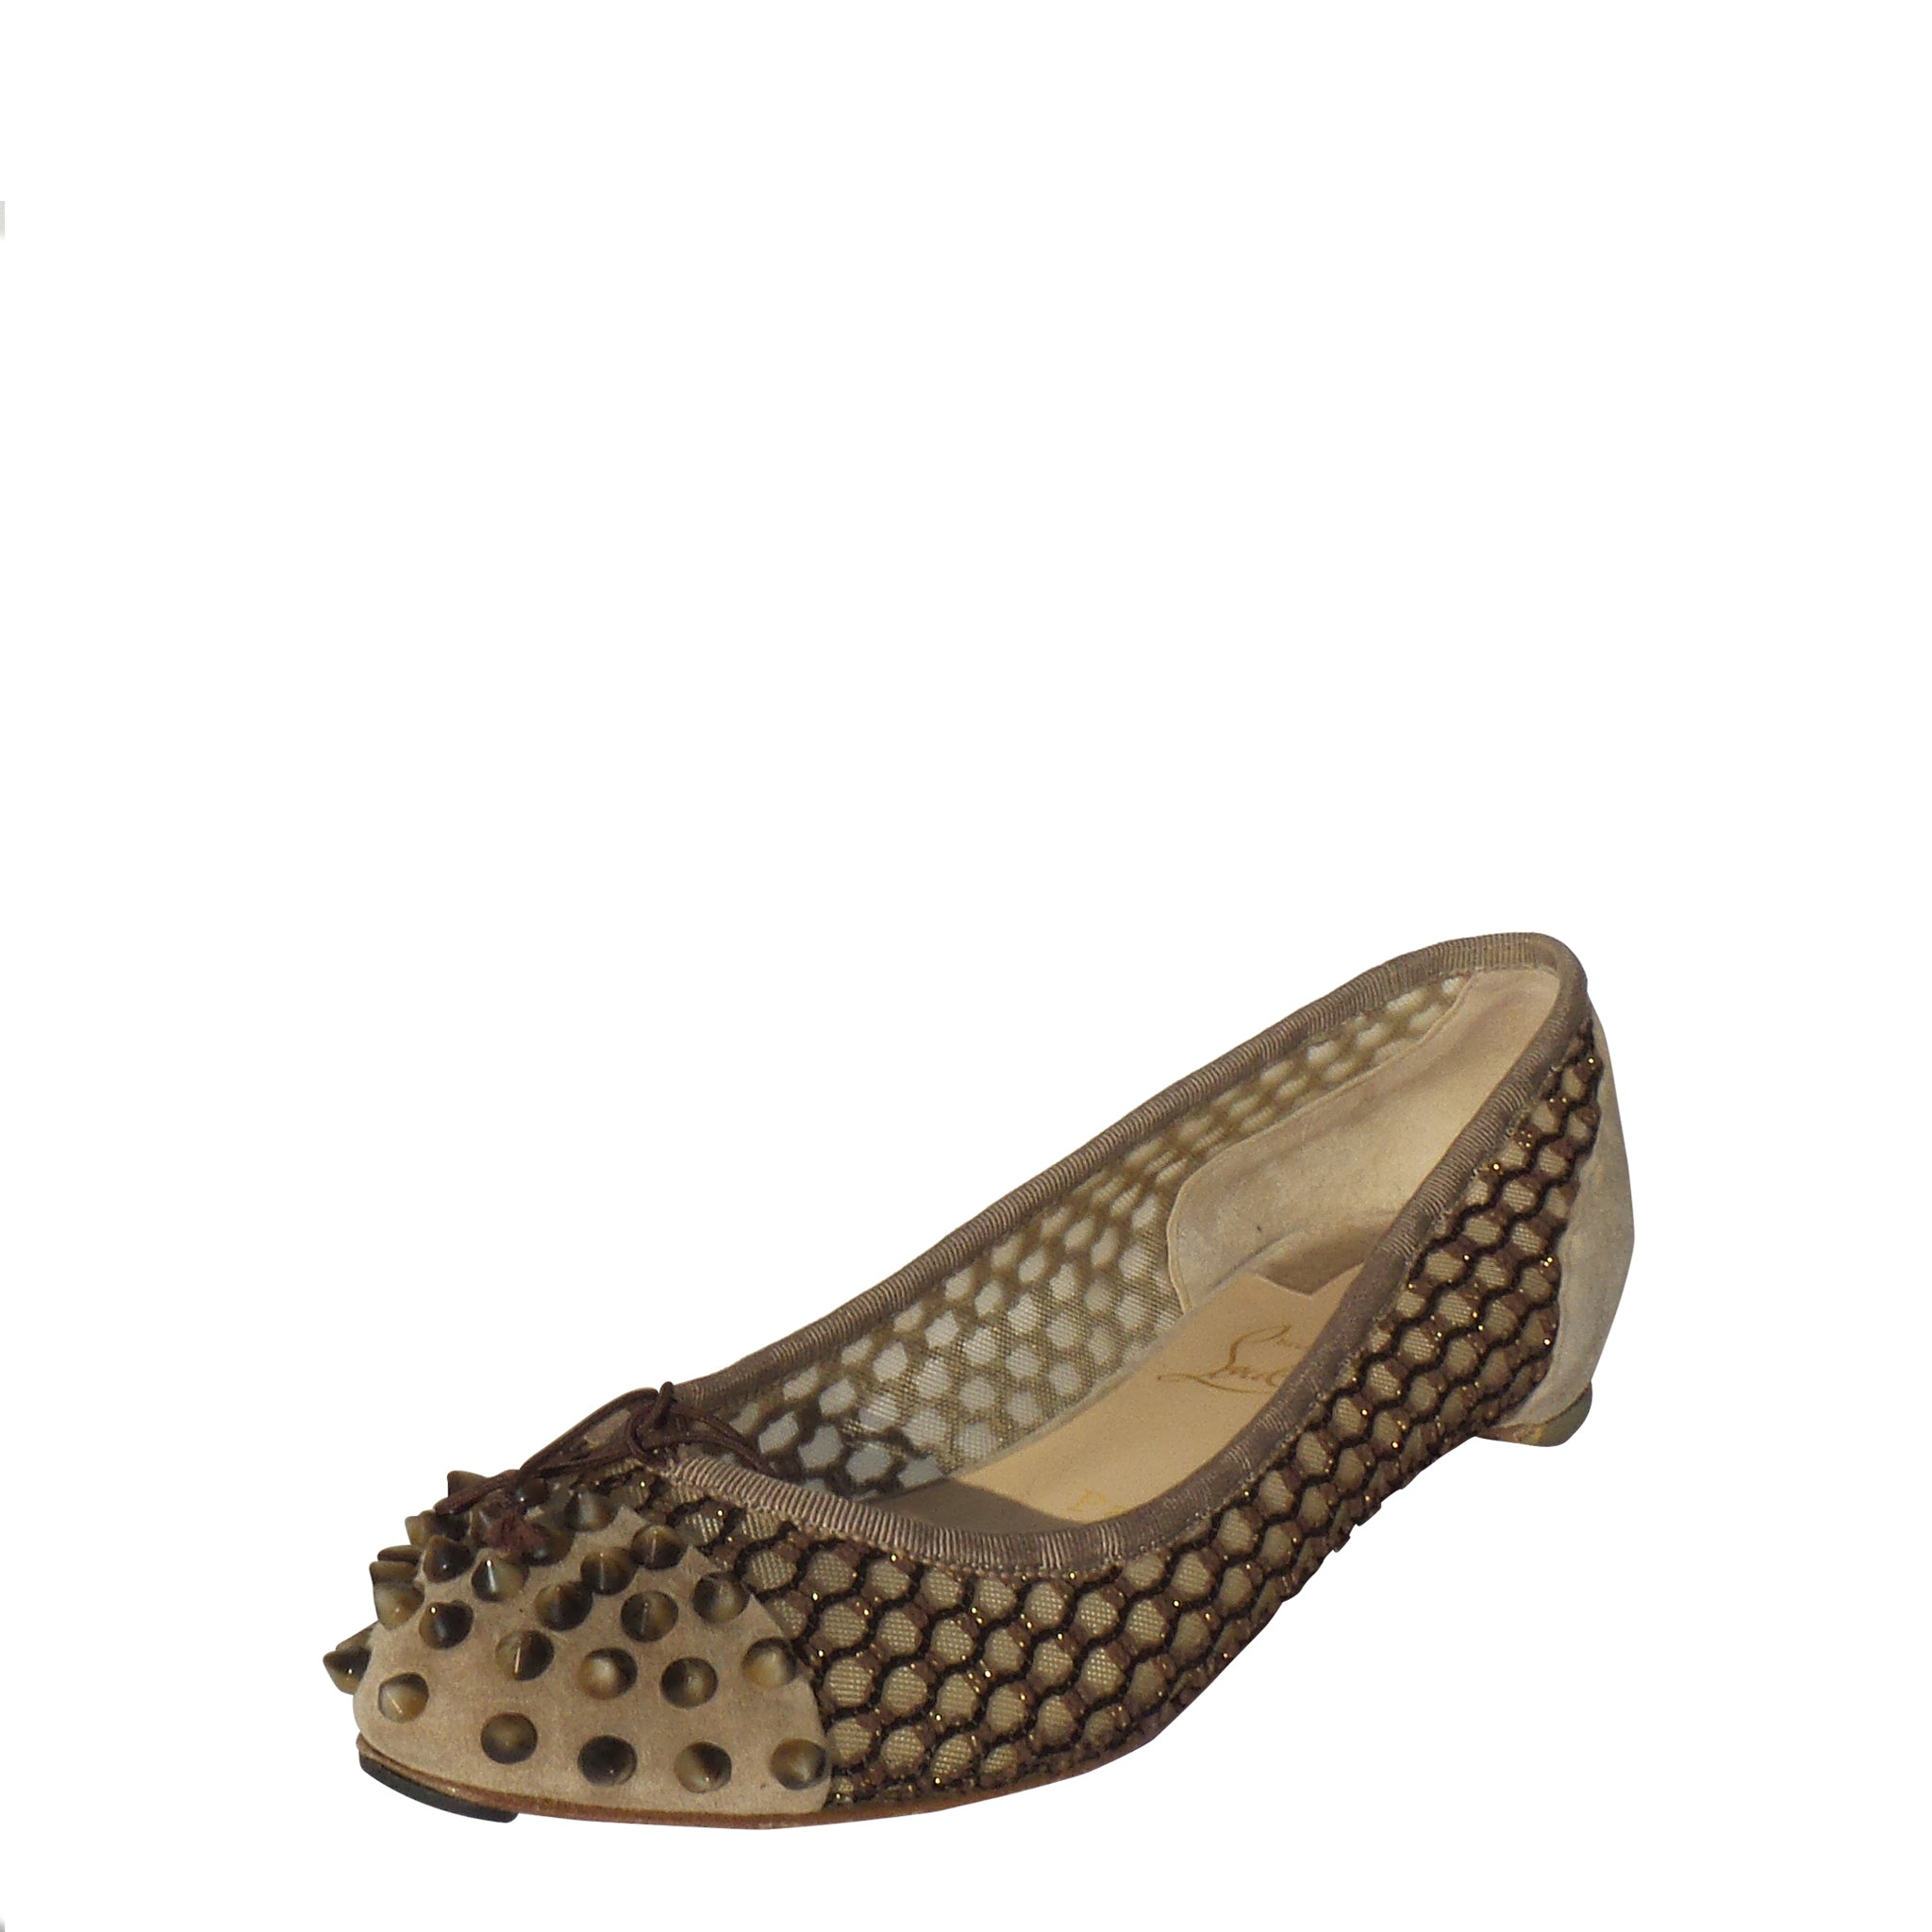 the latest 5f2e0 b1b60 CHRISTIAN LOUBOUTIN Mix Beige Suede Knotted Mesh Spiked Toe Ballet Flats  38.5 GC